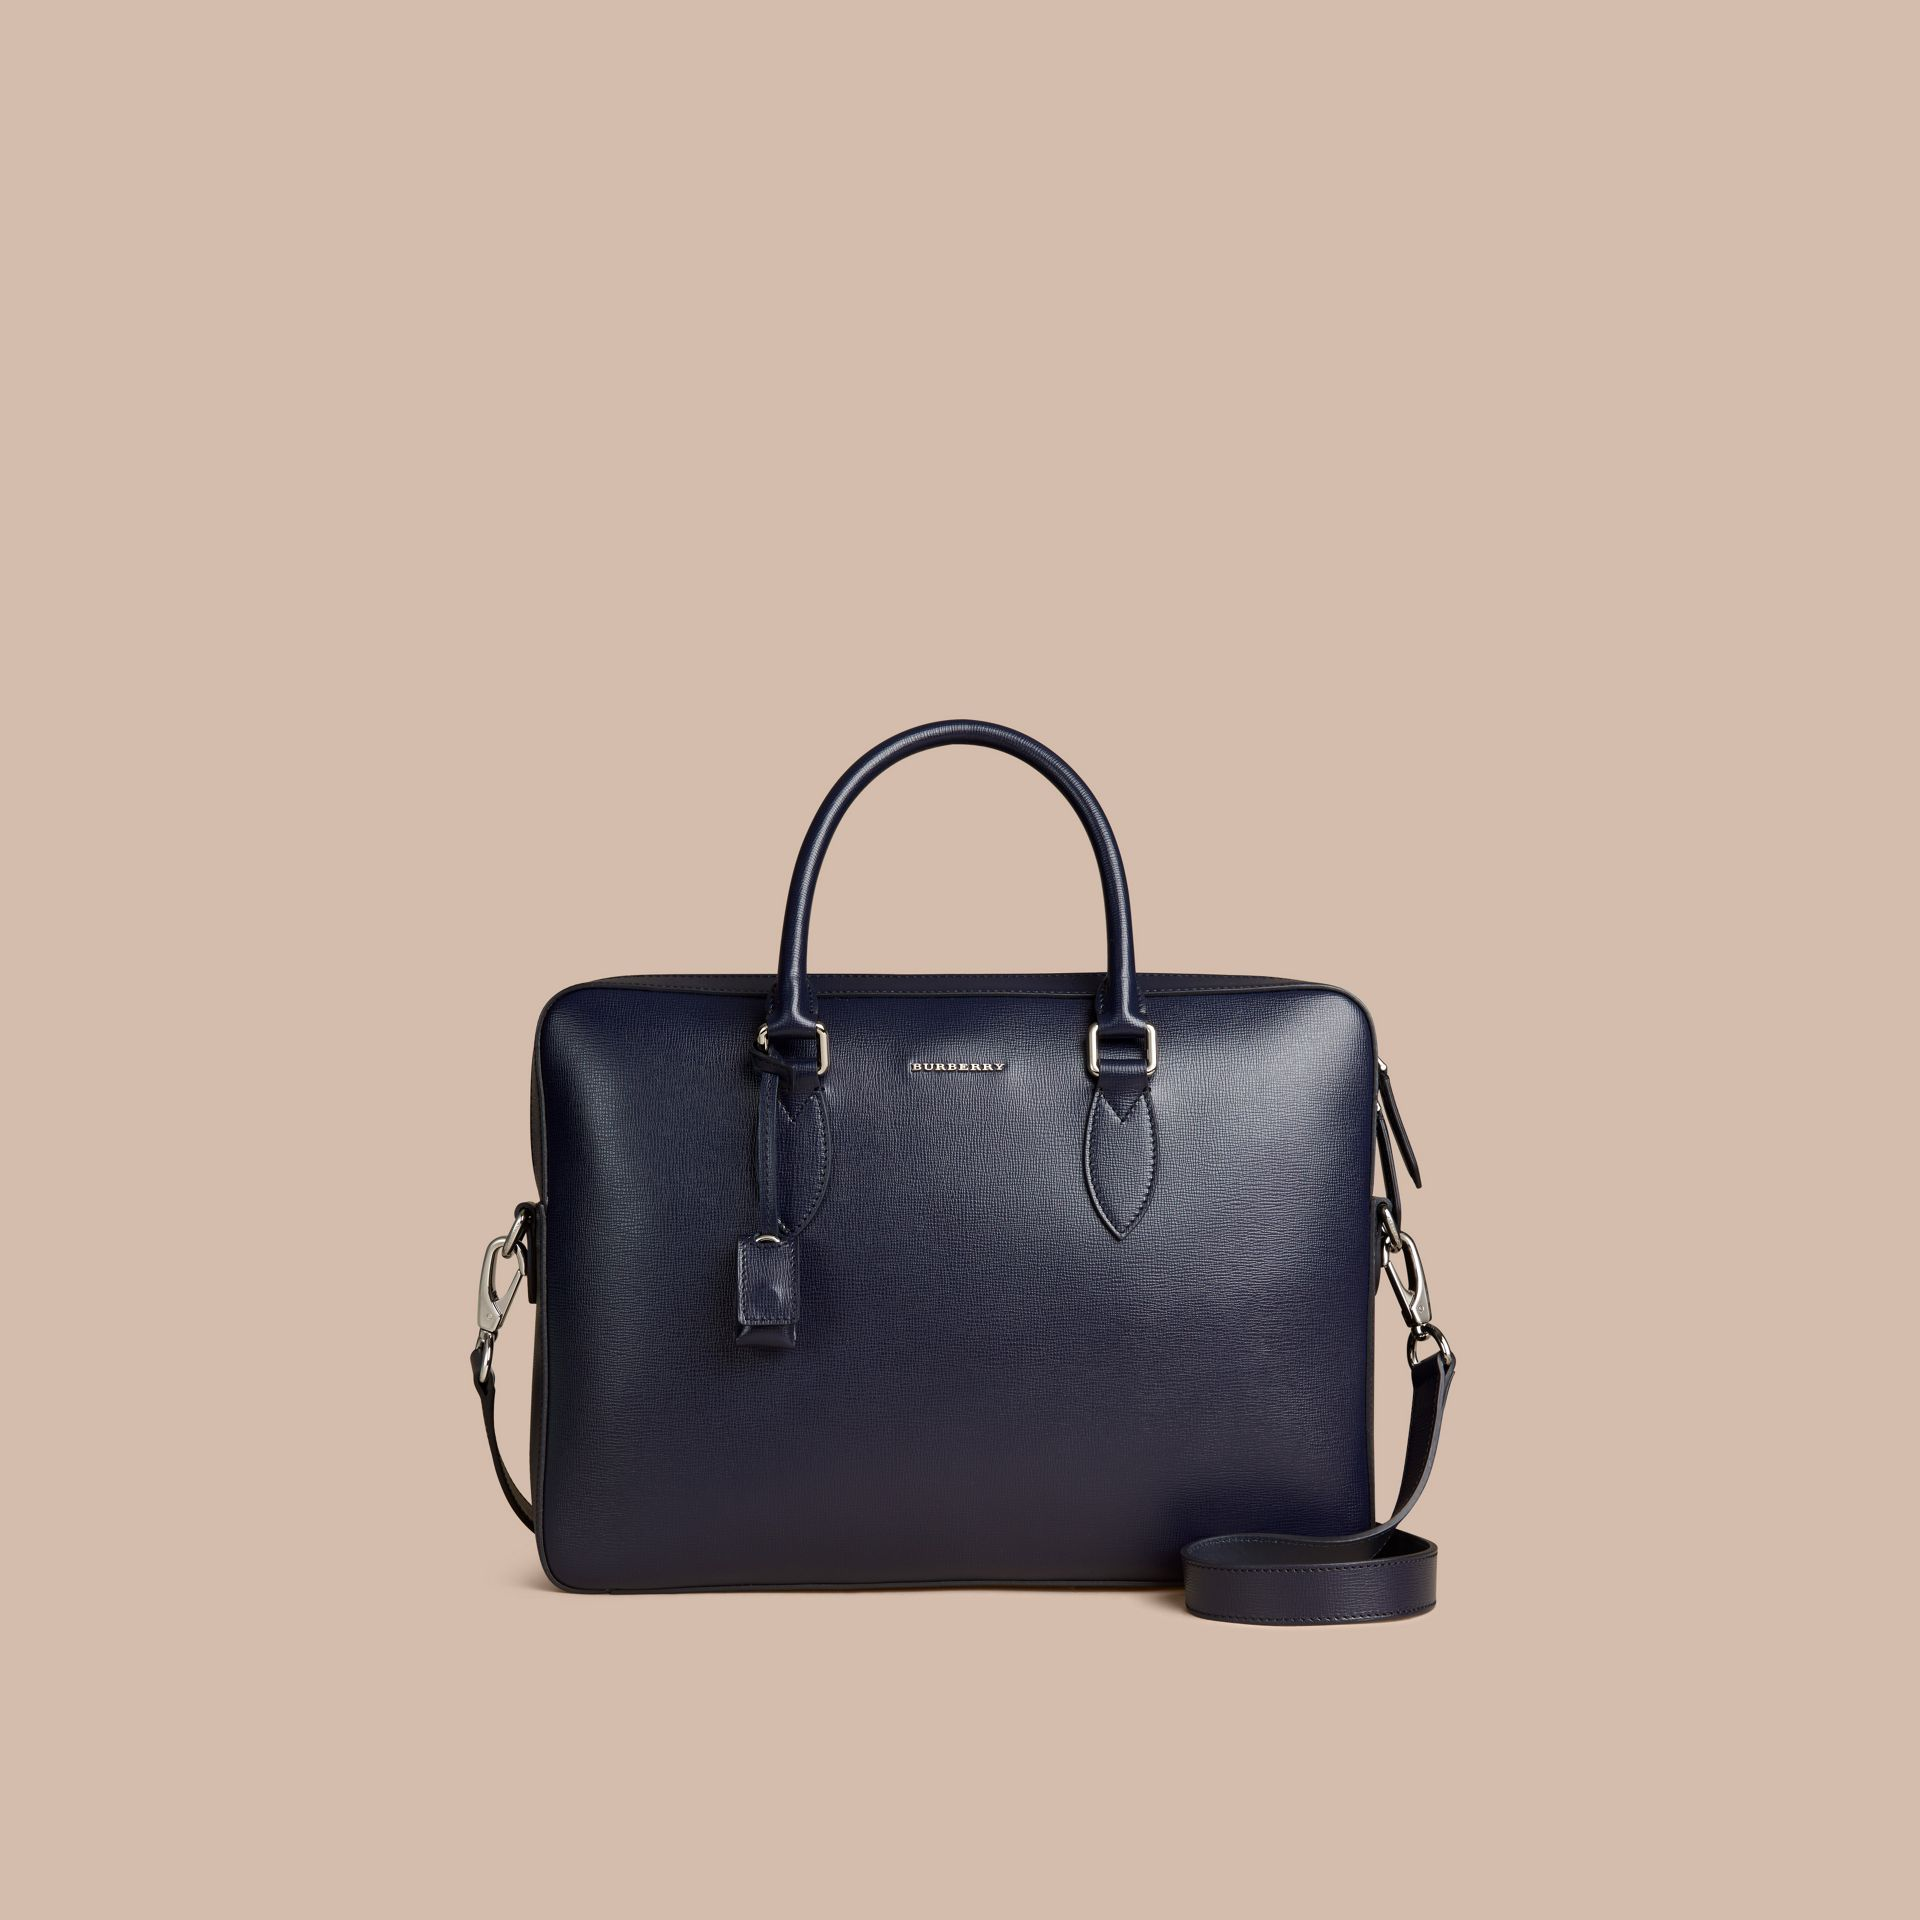 Borsa portadocumenti media in pelle London Navy Scuro - immagine della galleria 7